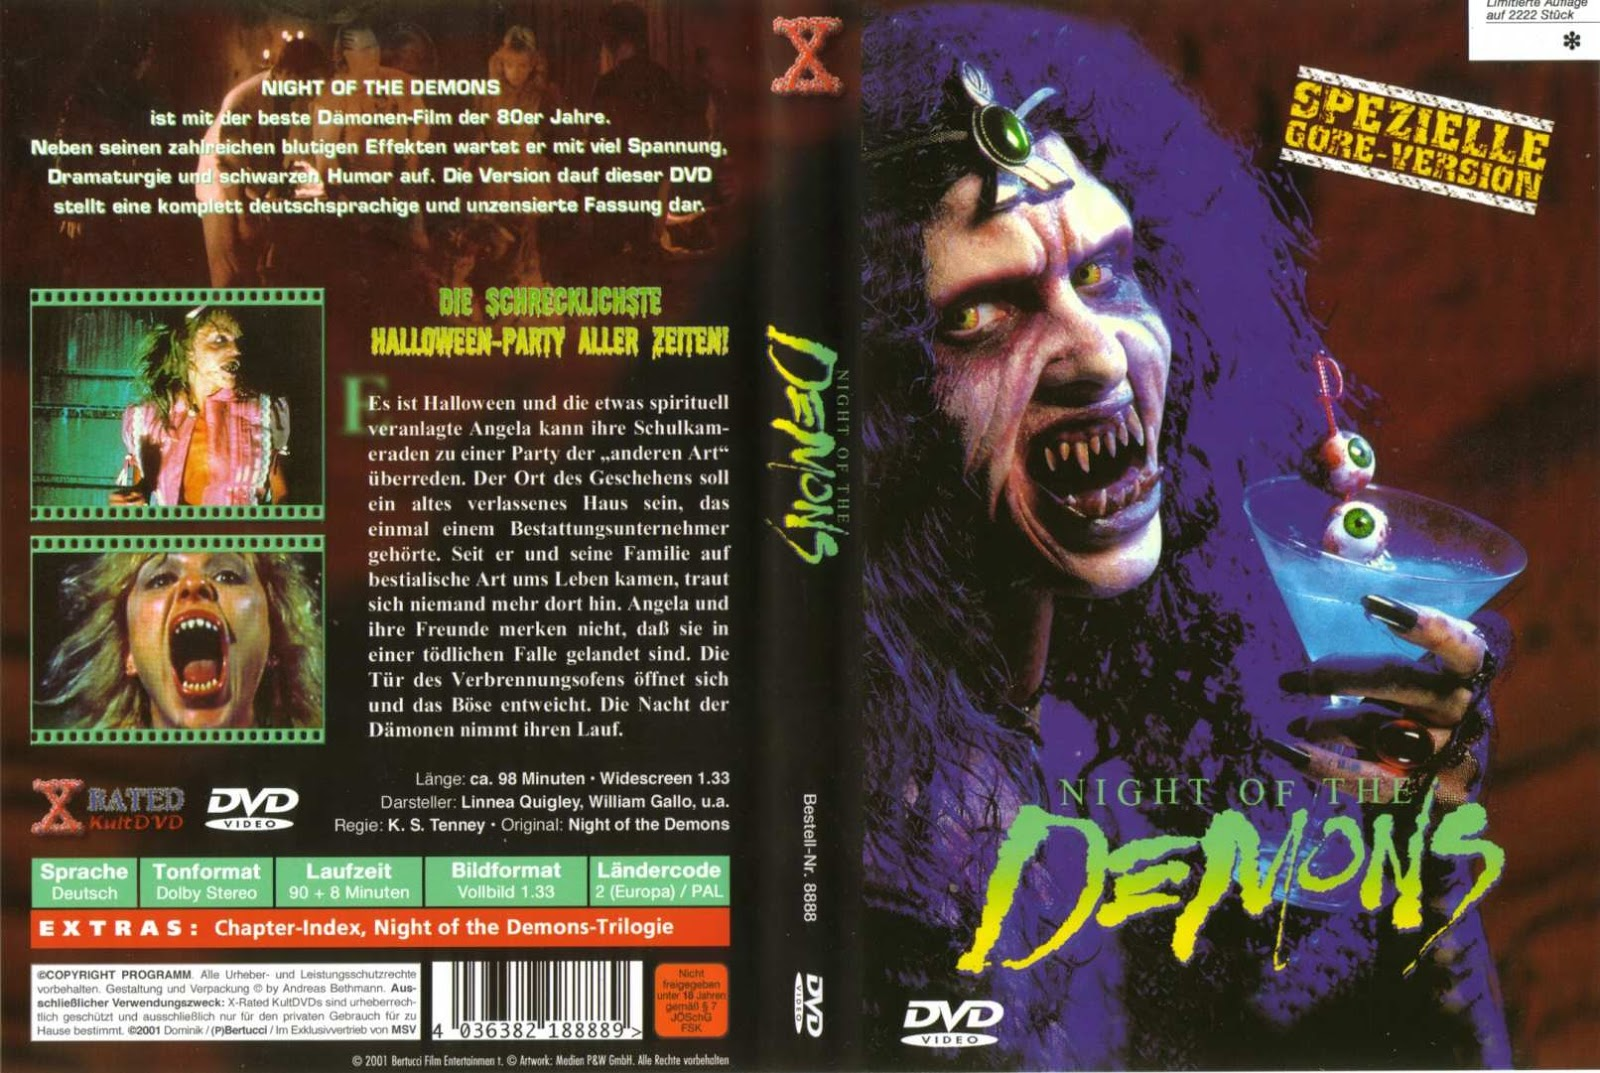 The Horrors of Halloween: NIGHT OF THE DEMONS Trilogy VHS and DVD ...